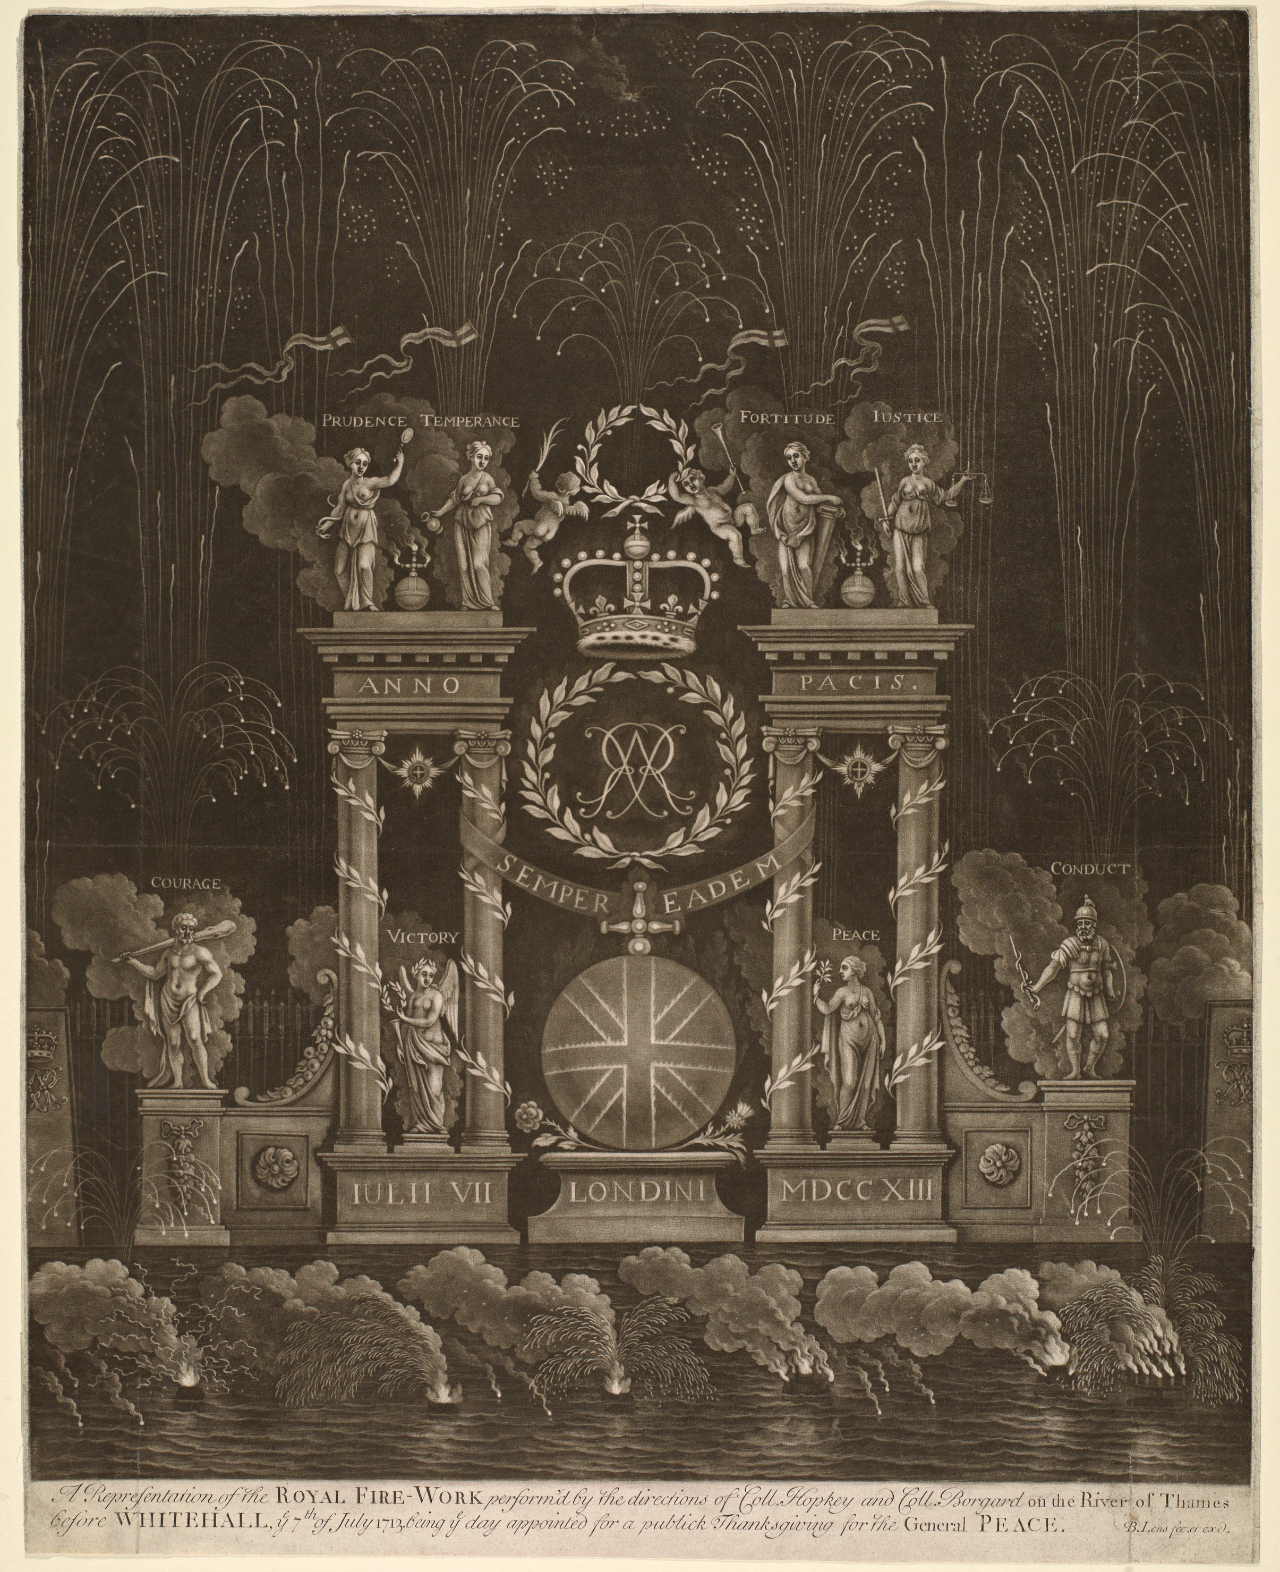 Mezzotint of a firework machine used on July 7, 1713 in London (1713) (via Getty Research Institute)